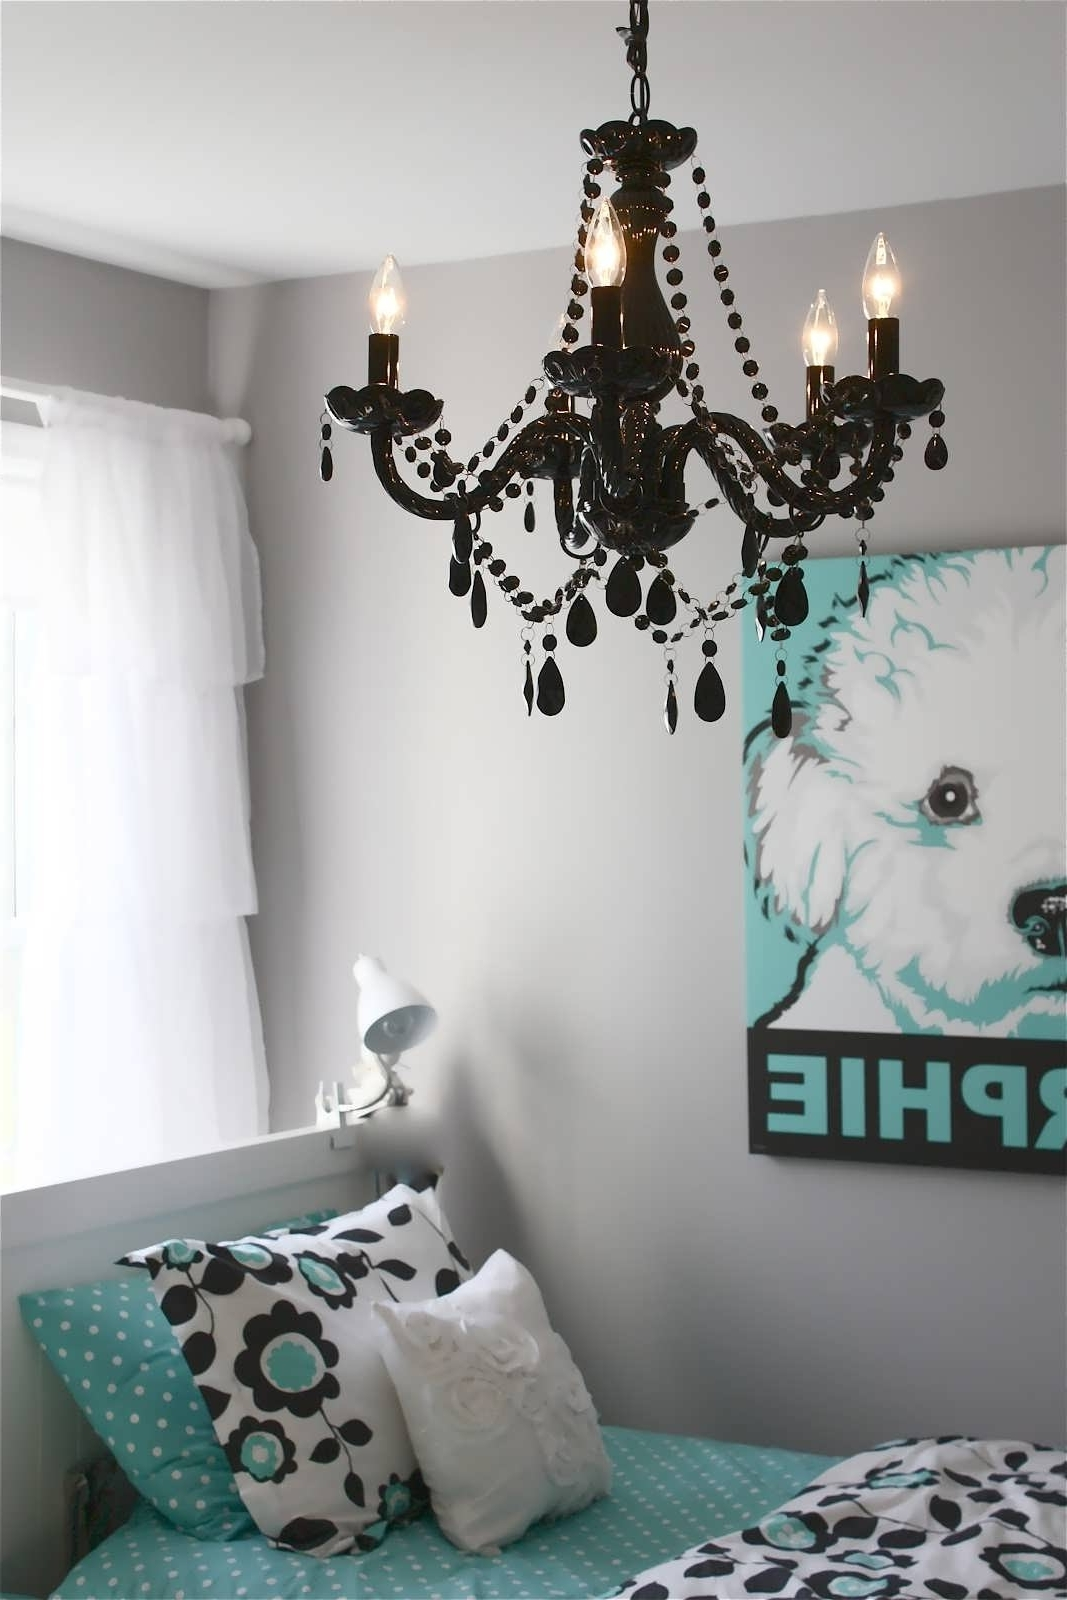 Turquoise Bedroom Chandeliers Pertaining To 2019 Chandelier : Lindsey Adelman Lighting Childrens Bedroom Lamps (View 14 of 20)